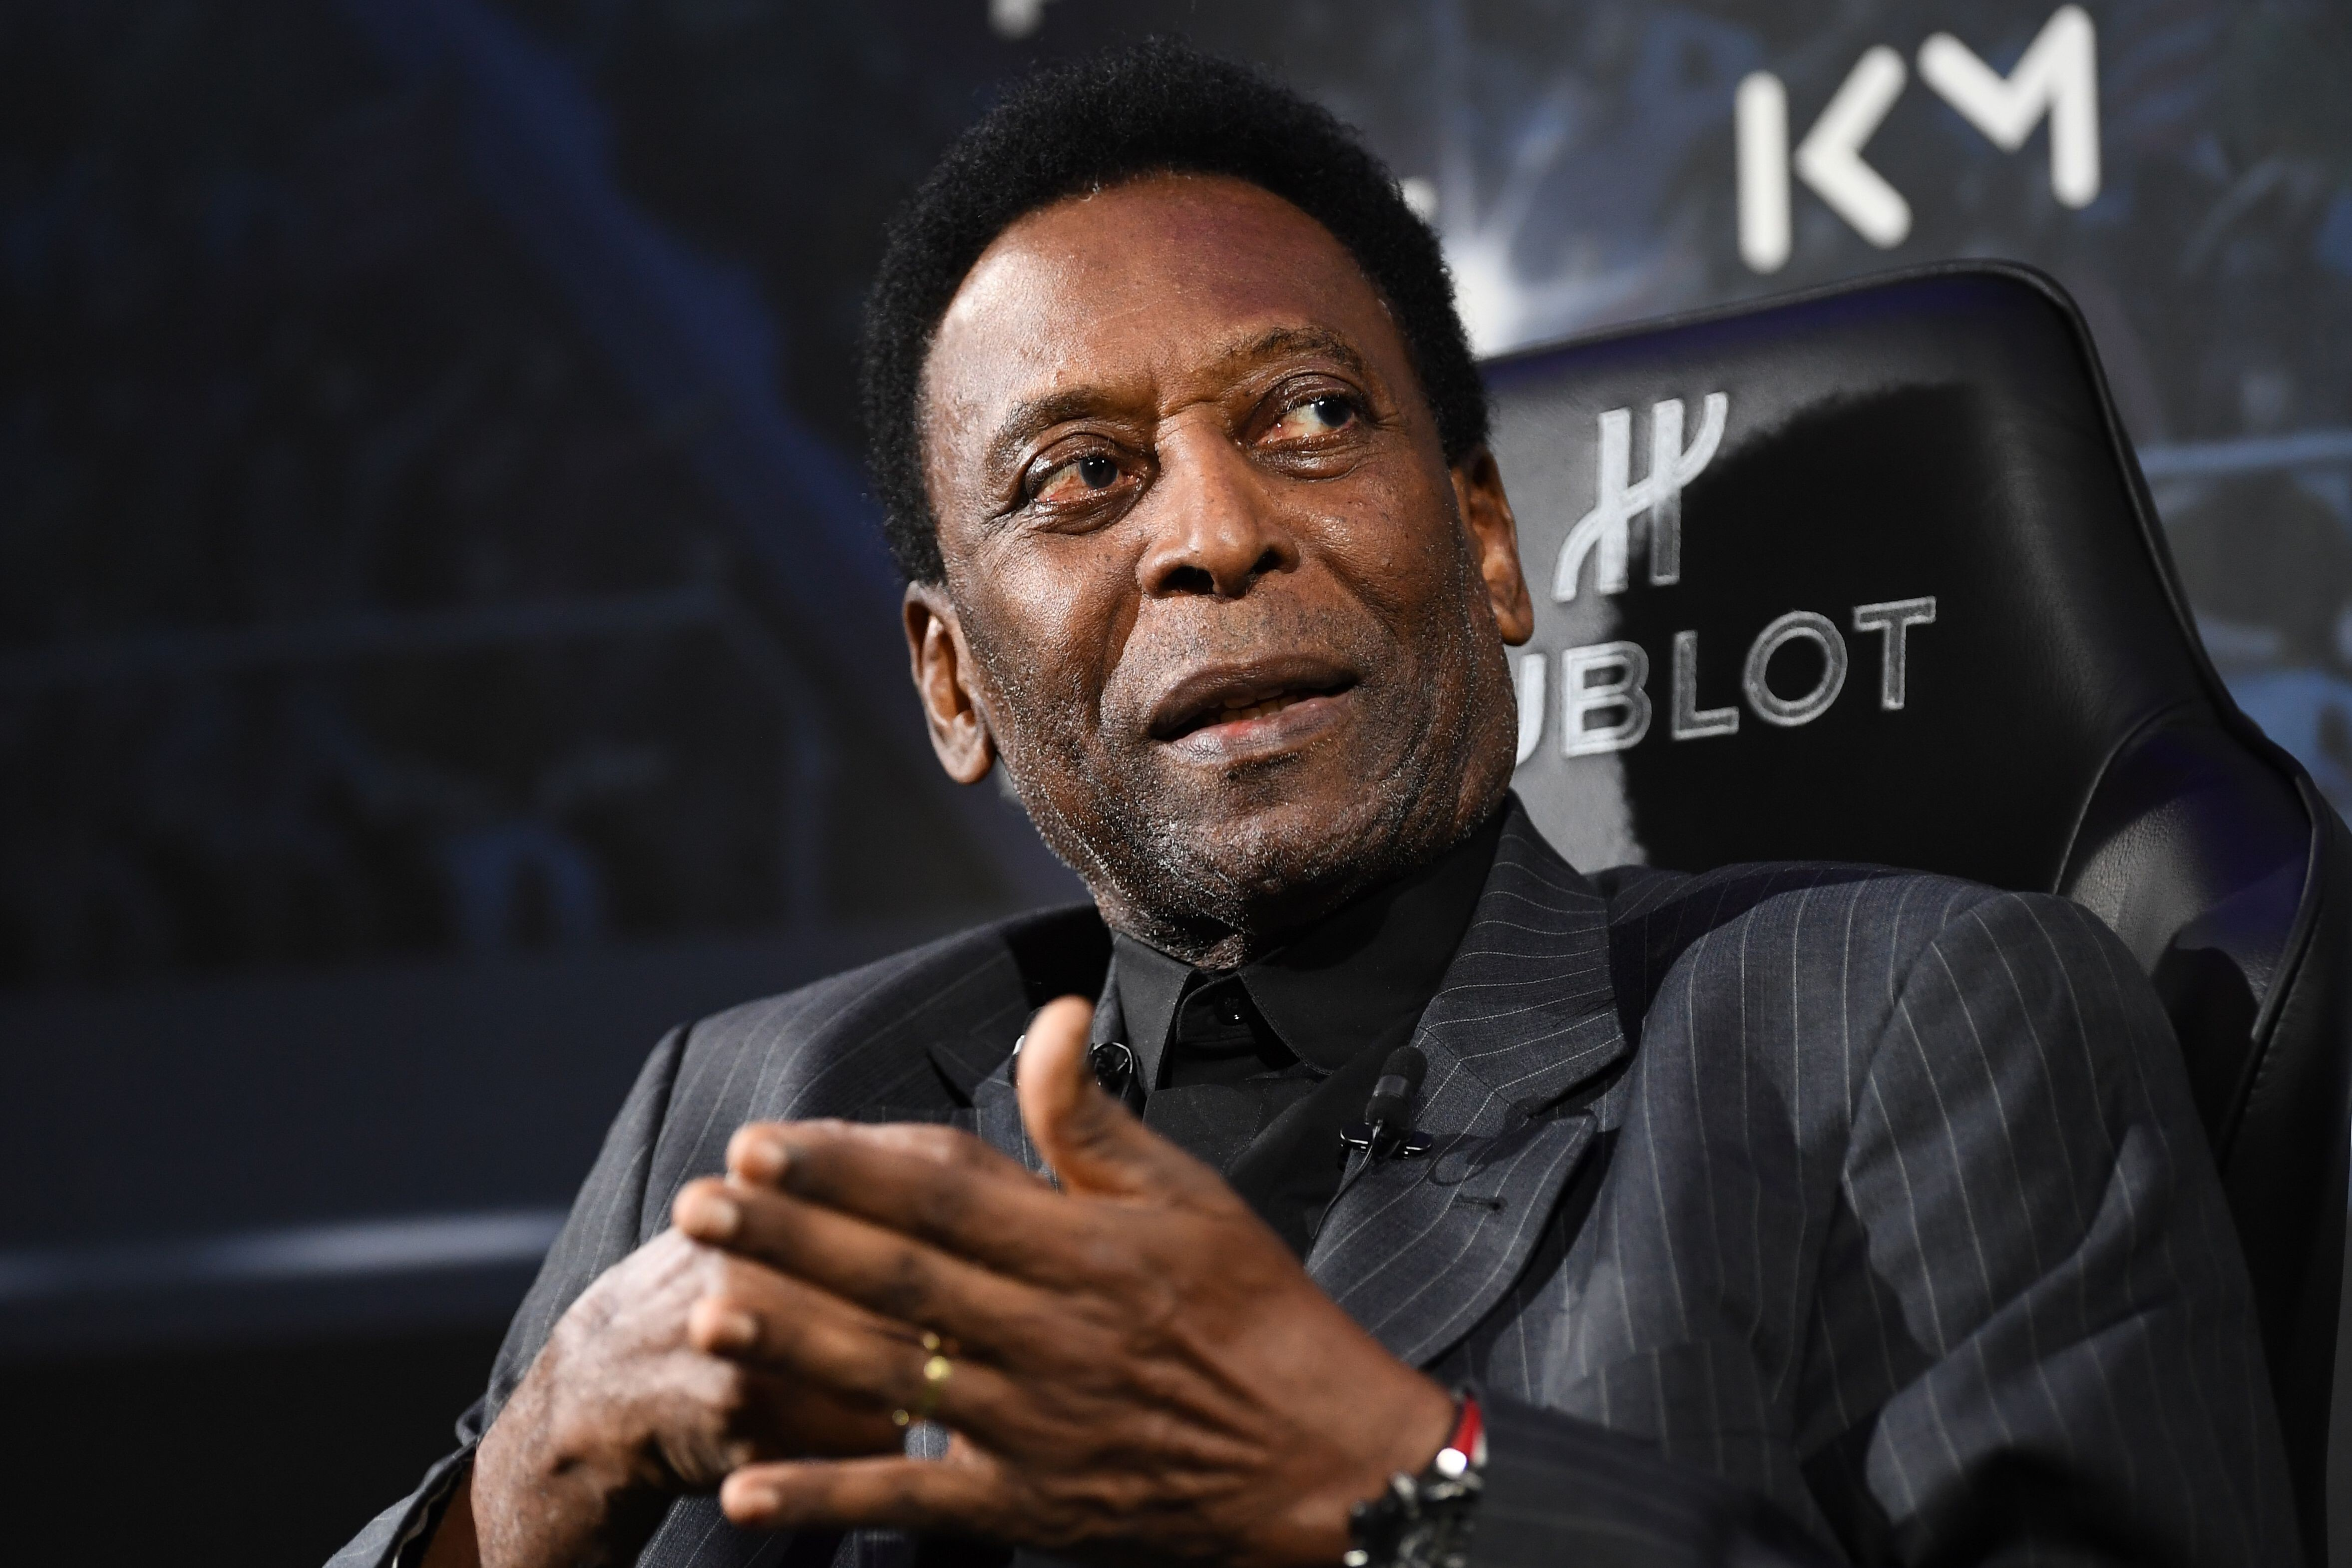 Brazil legend Pele leaves hospital after surgery to remove tumor